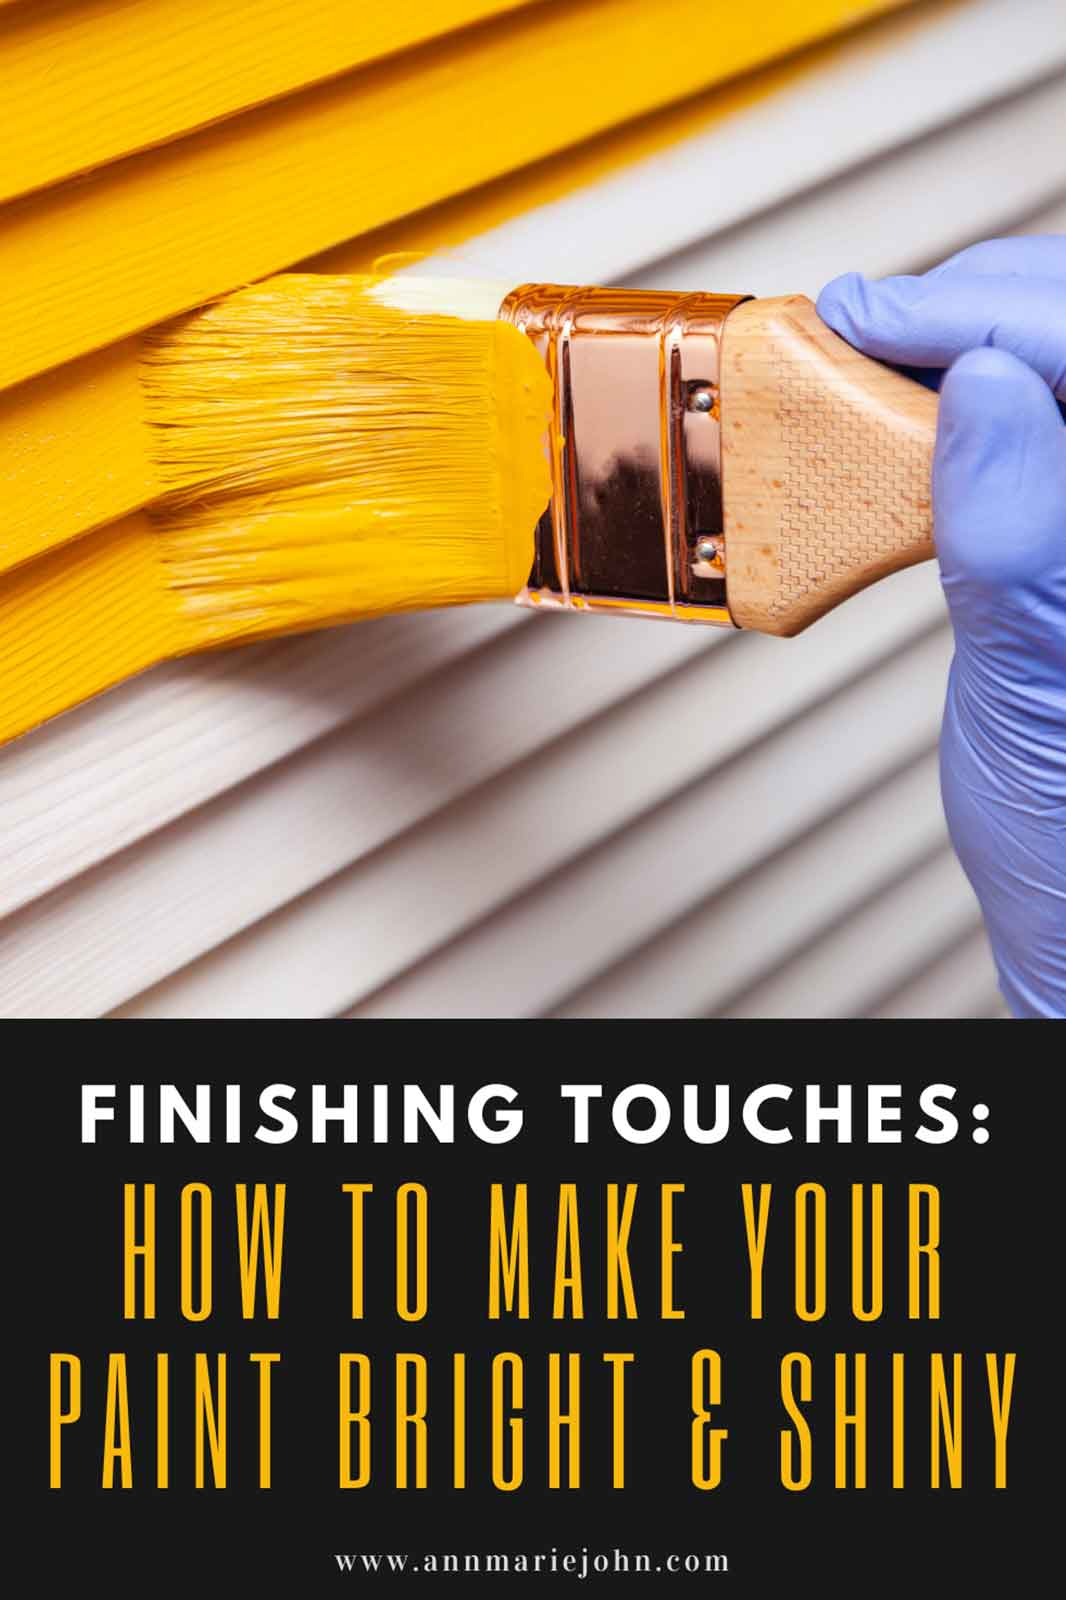 How to Make Your Paint Bright and Shiny